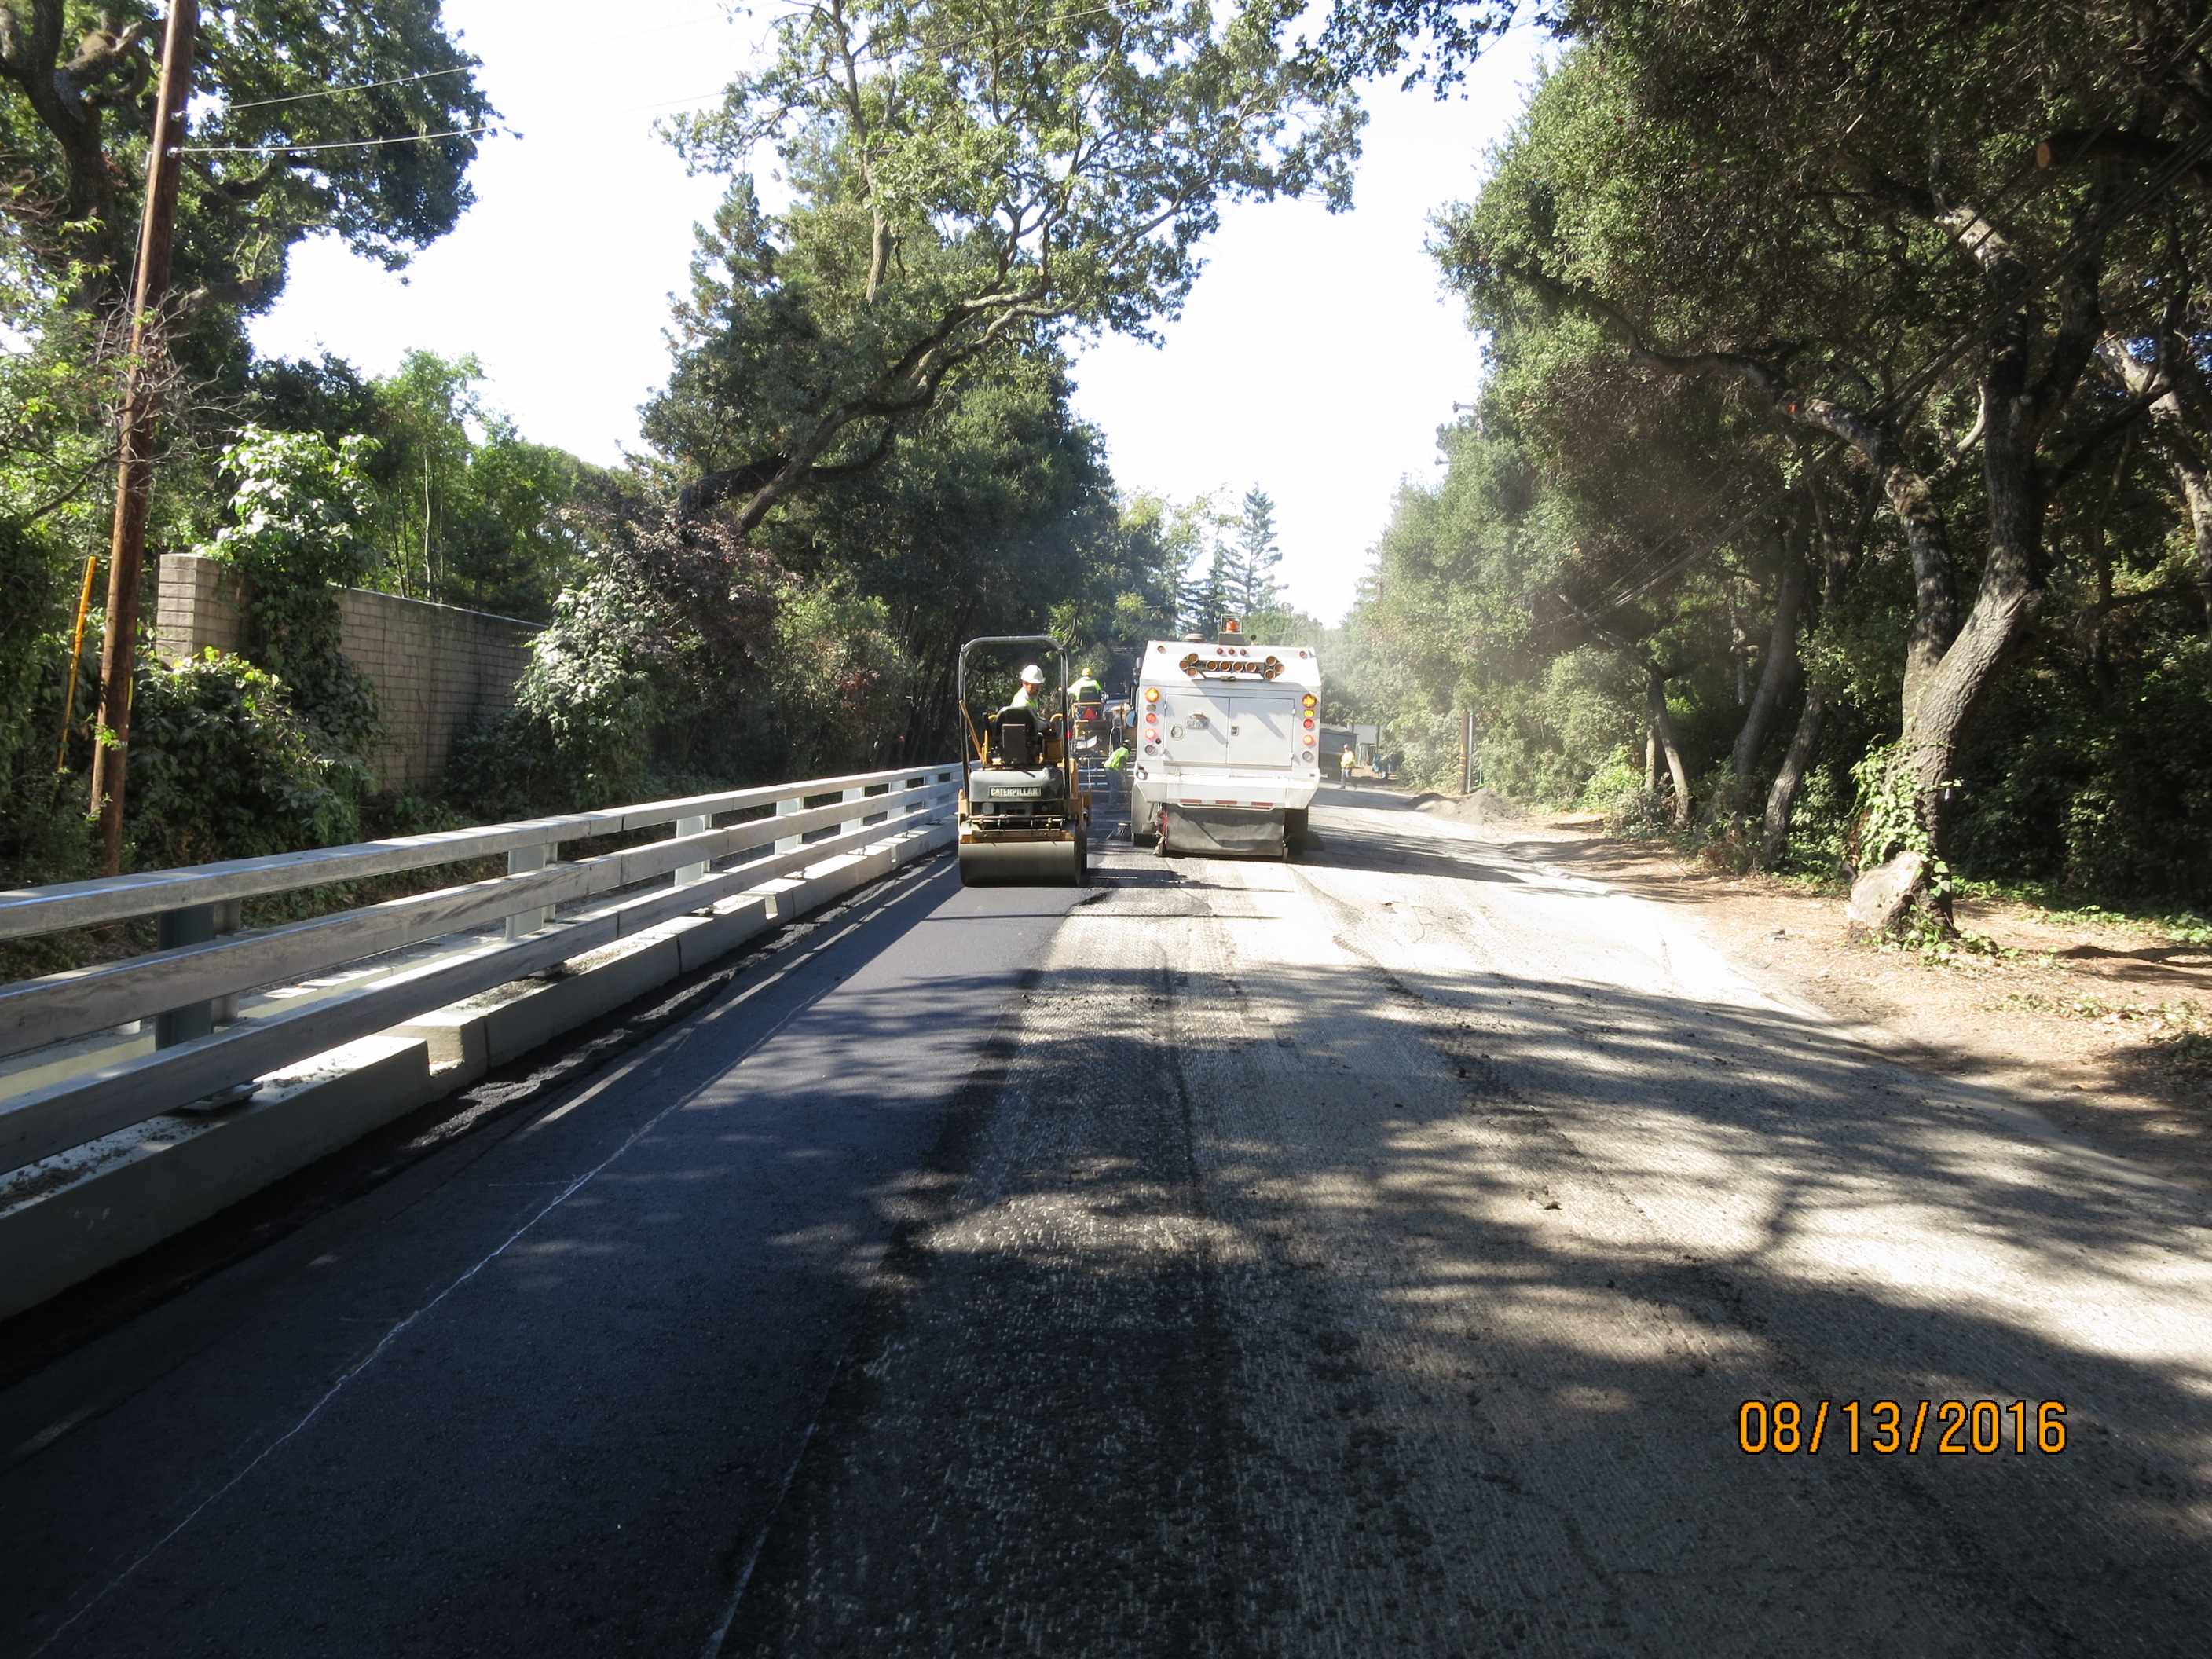 Paving near guardrail